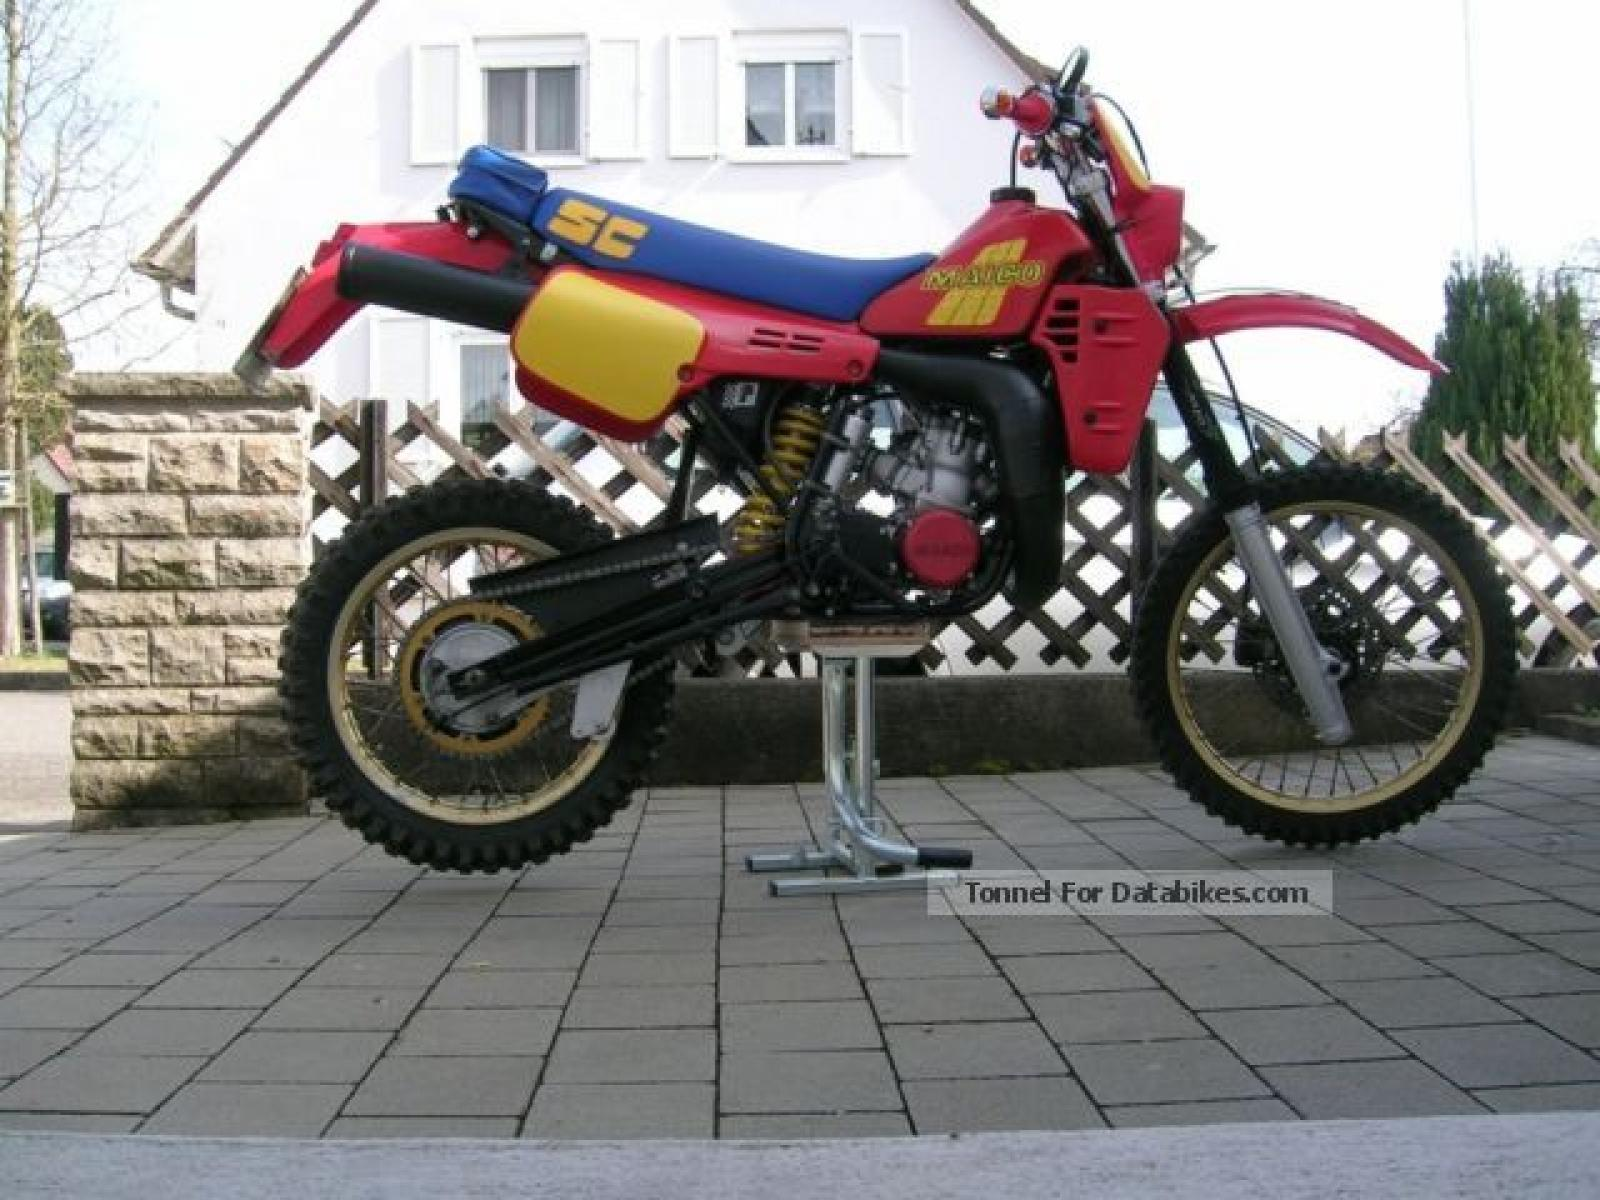 Maico GME 250 1984 images #102388